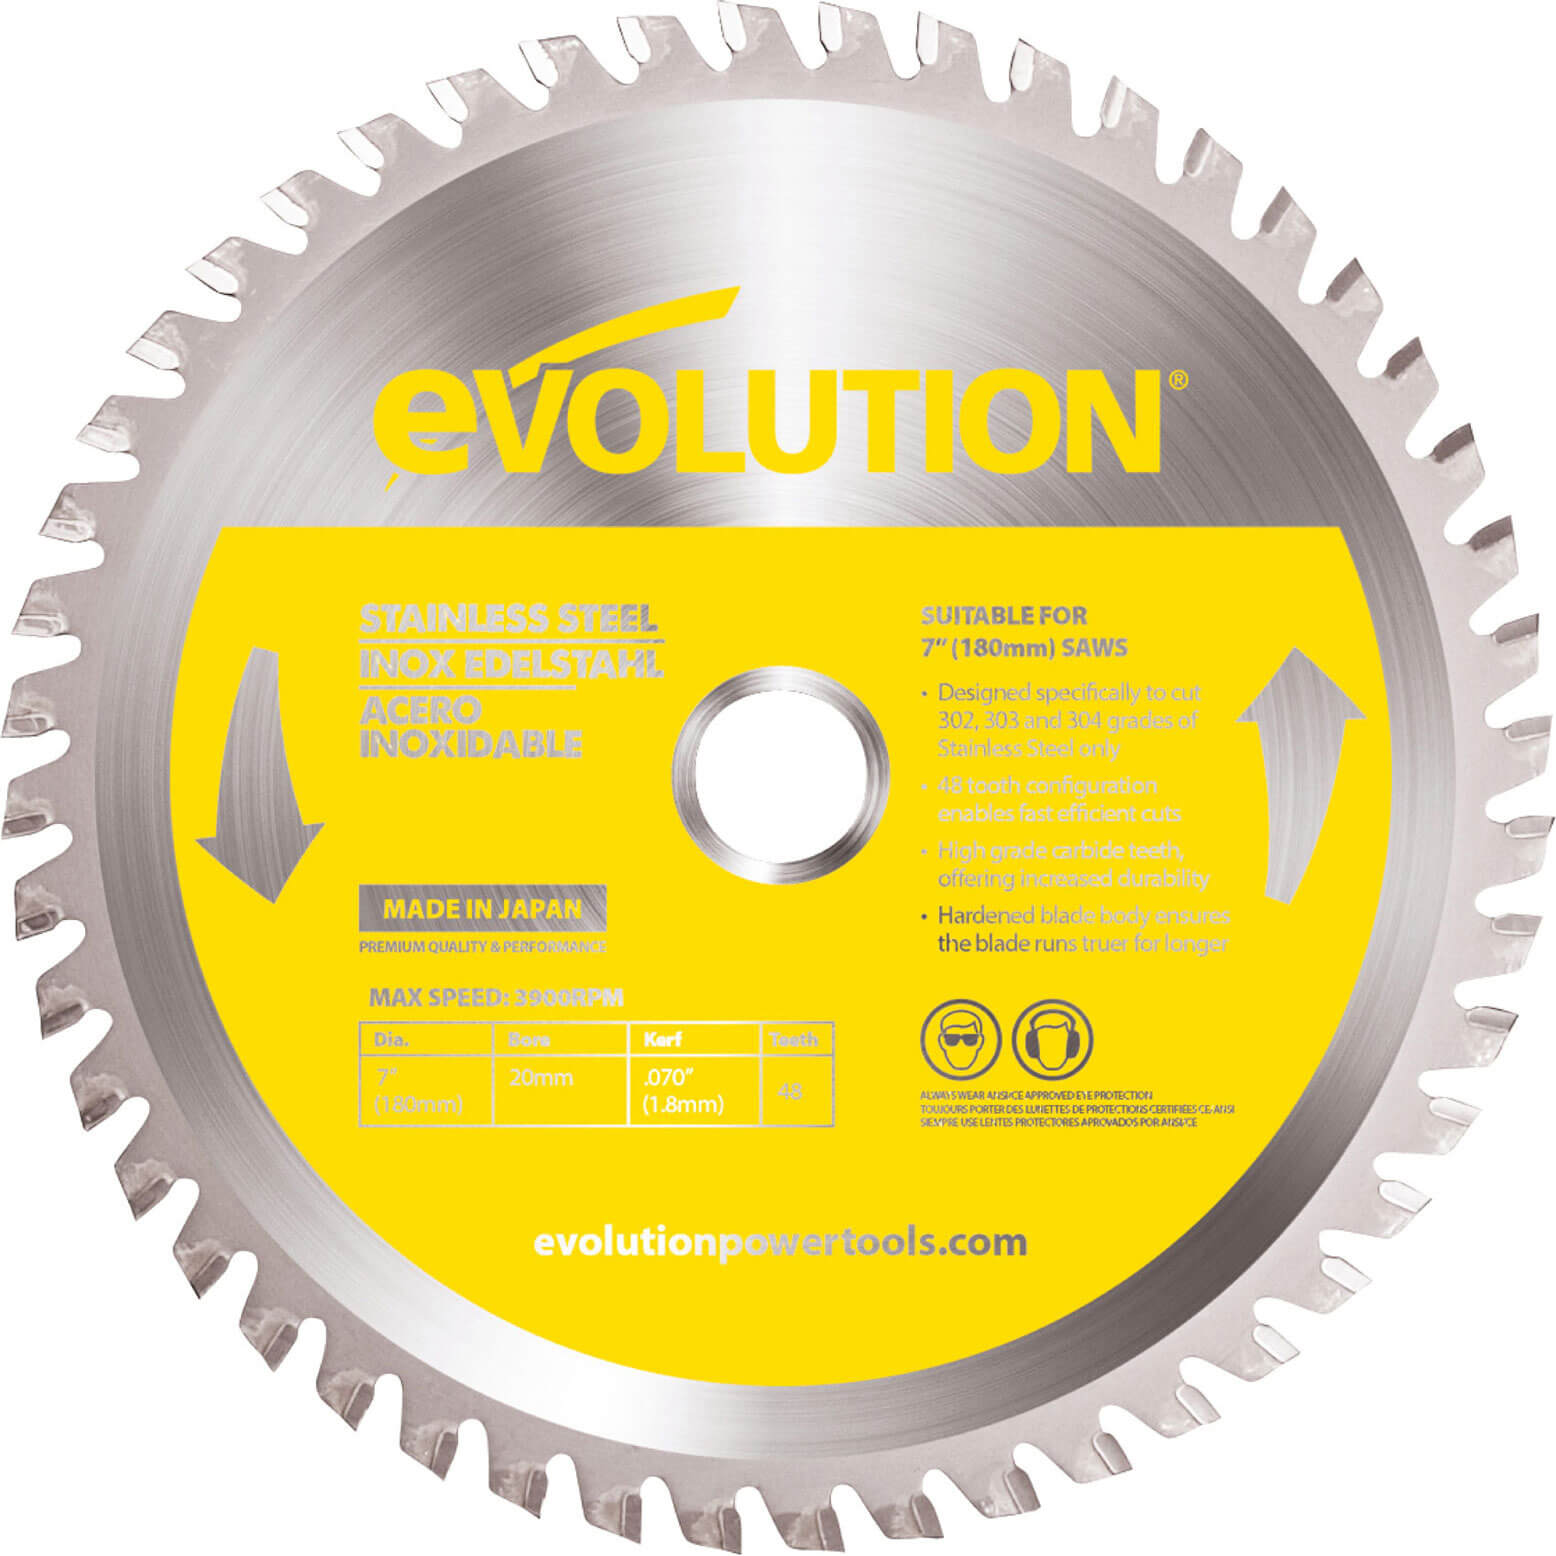 Image of Evolution Stainless Steel Cutting Saw Blade 180mm 48T 20mm